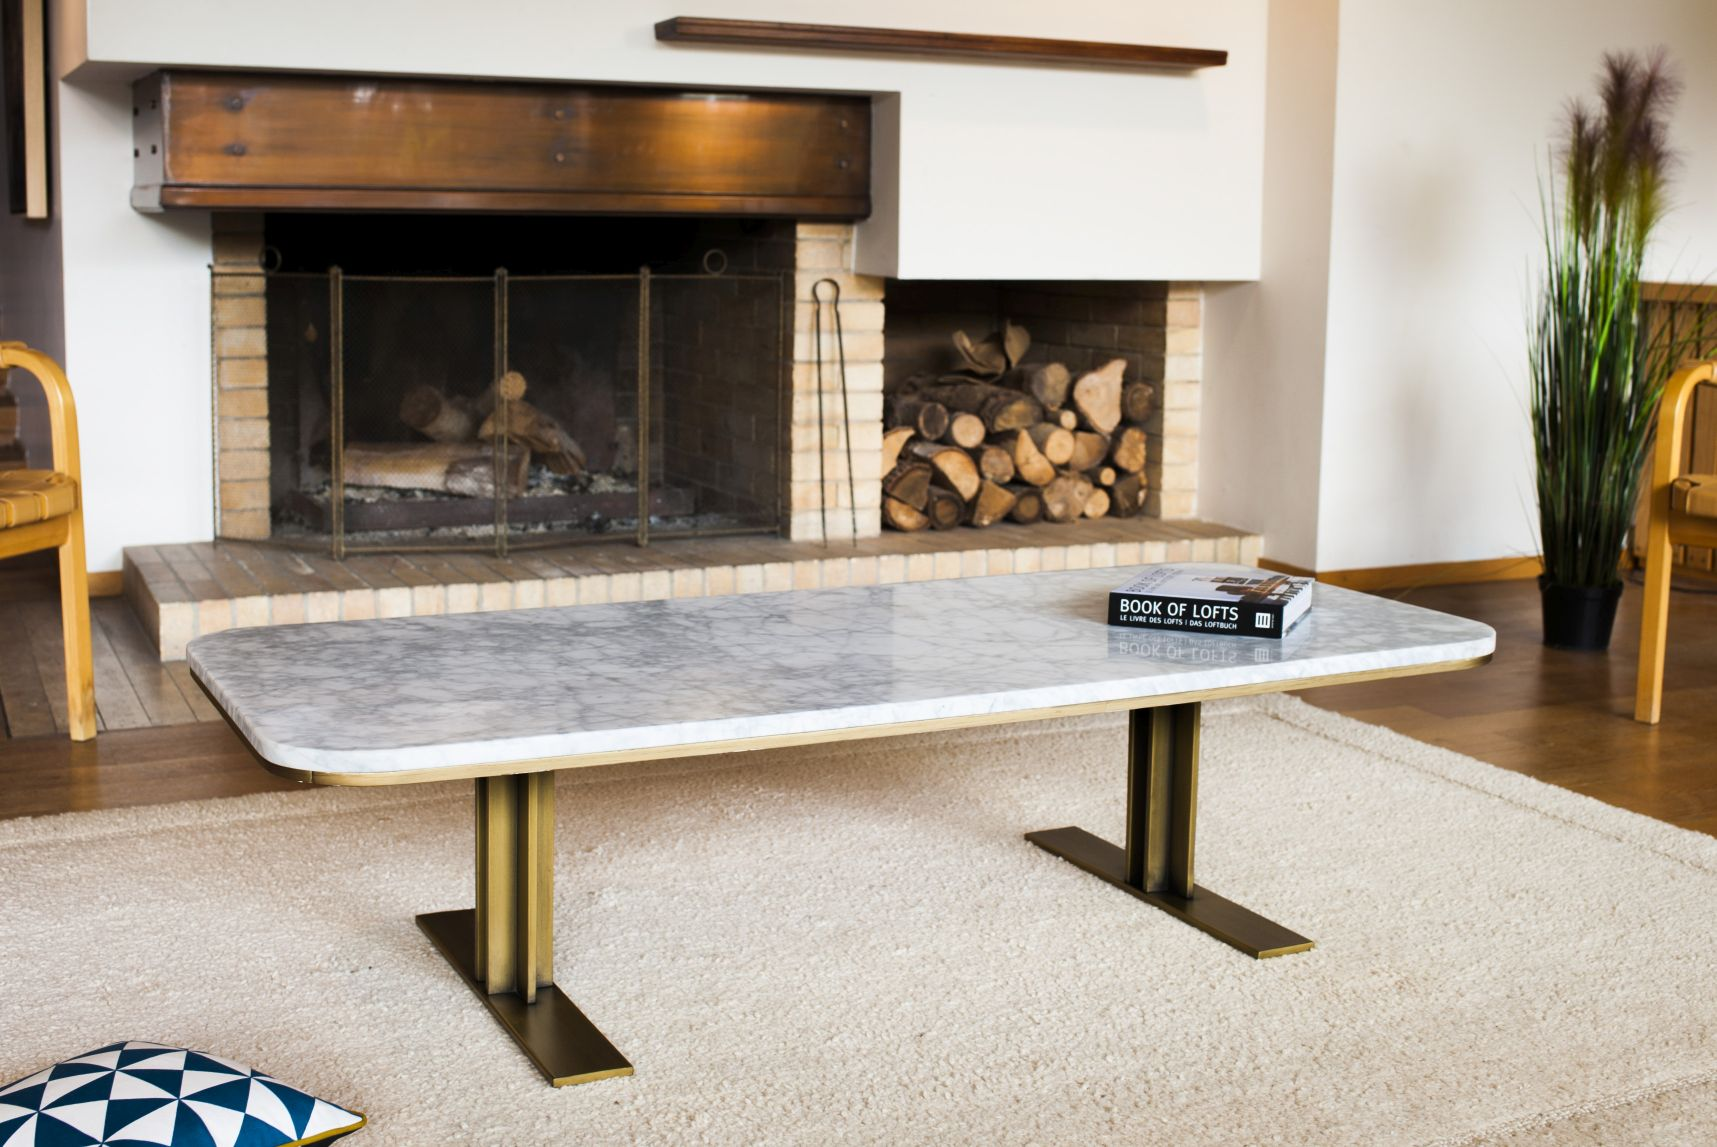 obr.2_pib_carrera-marble-and-brass-coffee-table.jpg